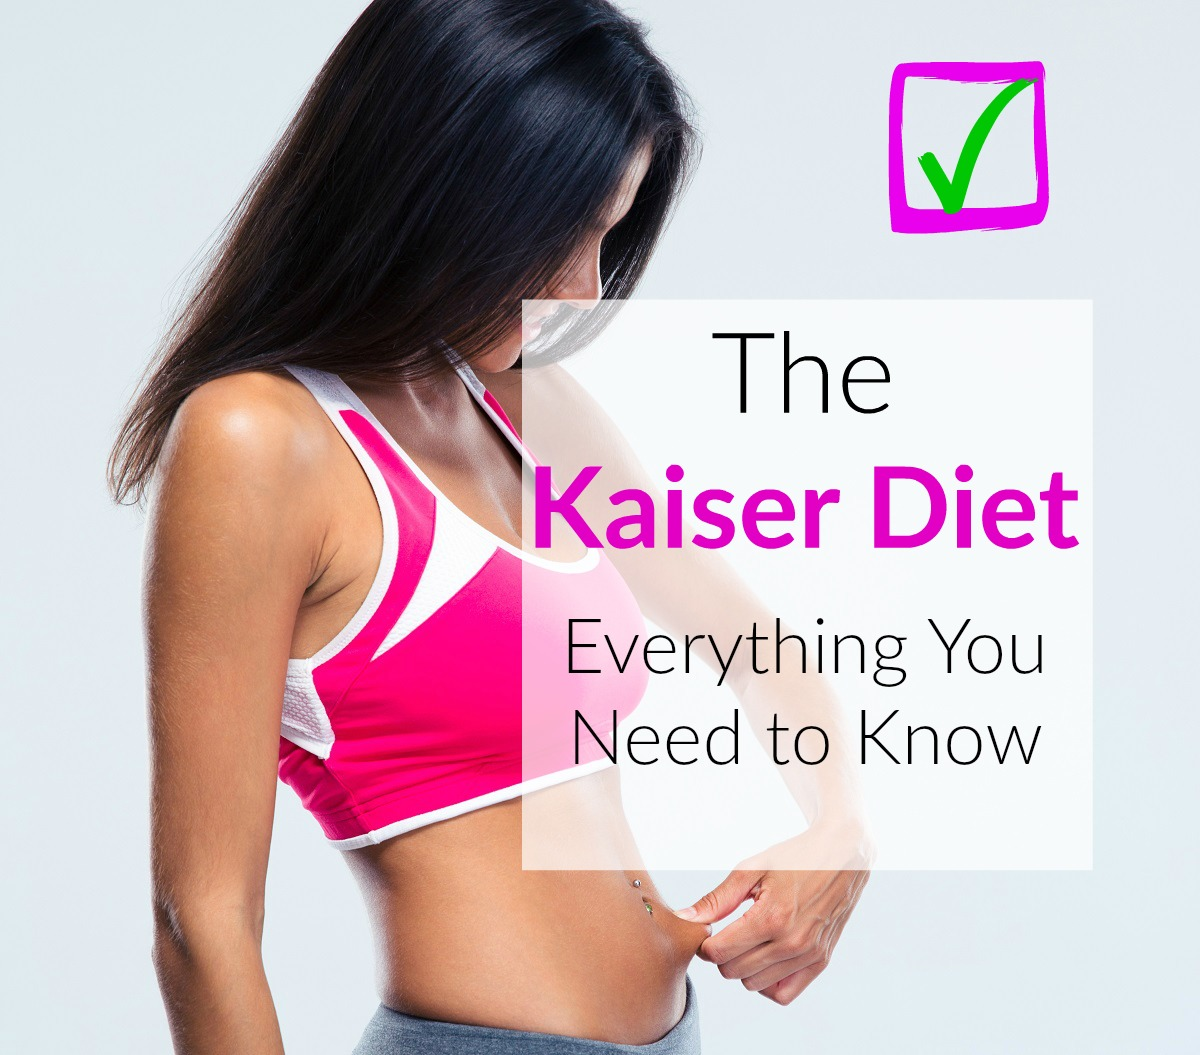 the Kaiser Diet plan